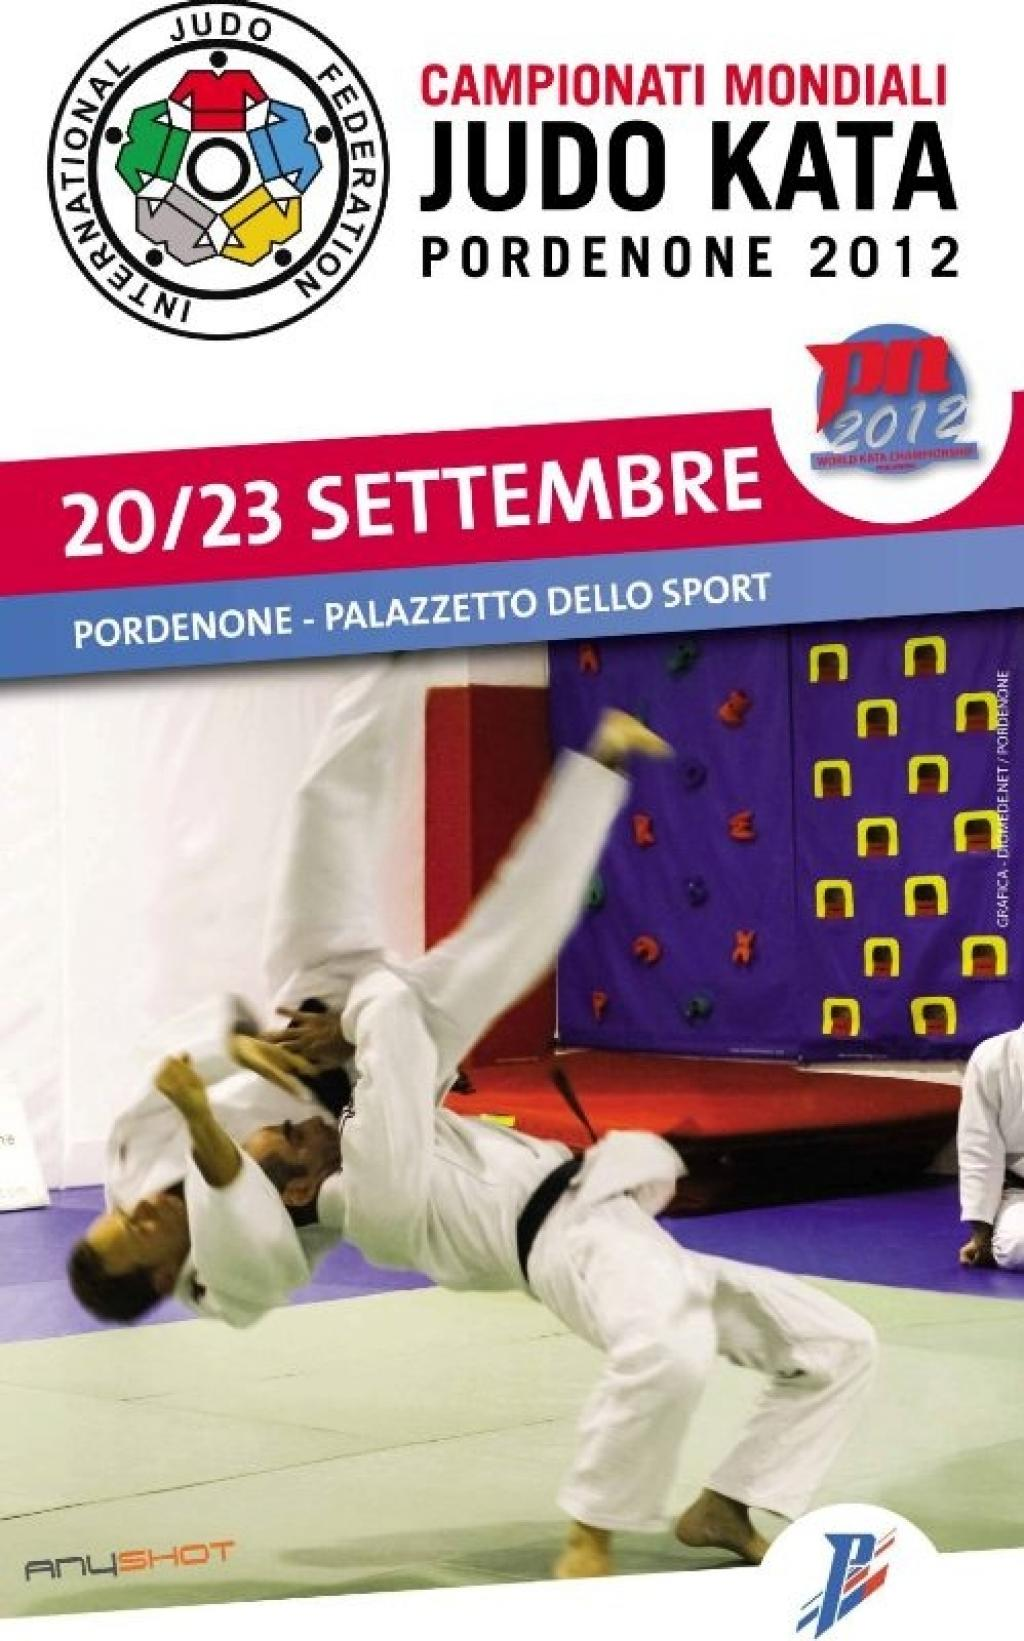 132 pairs from 33 Nations in the 4th kata World Championships